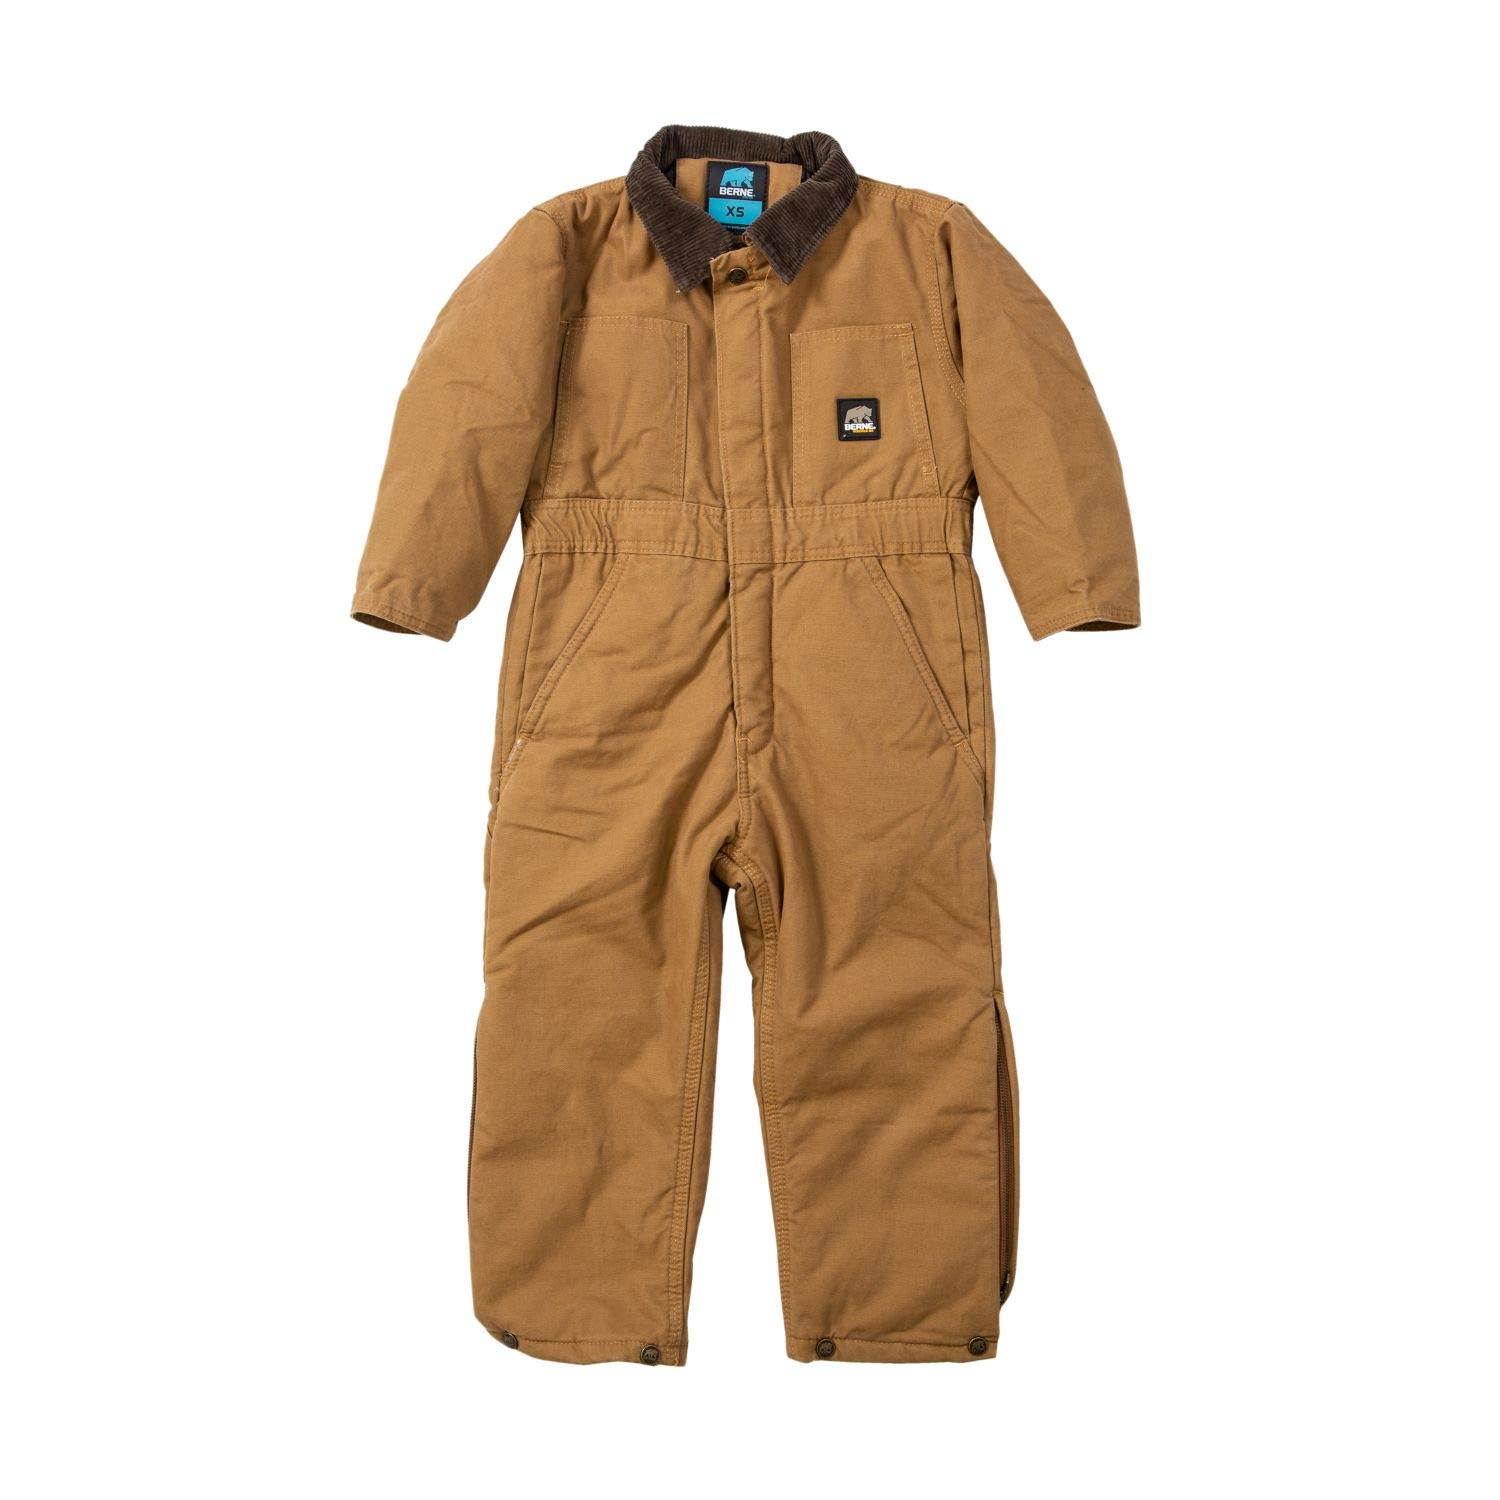 Berne BI38 Boys' Washed Insulated Coverall, Brown Duck - X-Small/Regular